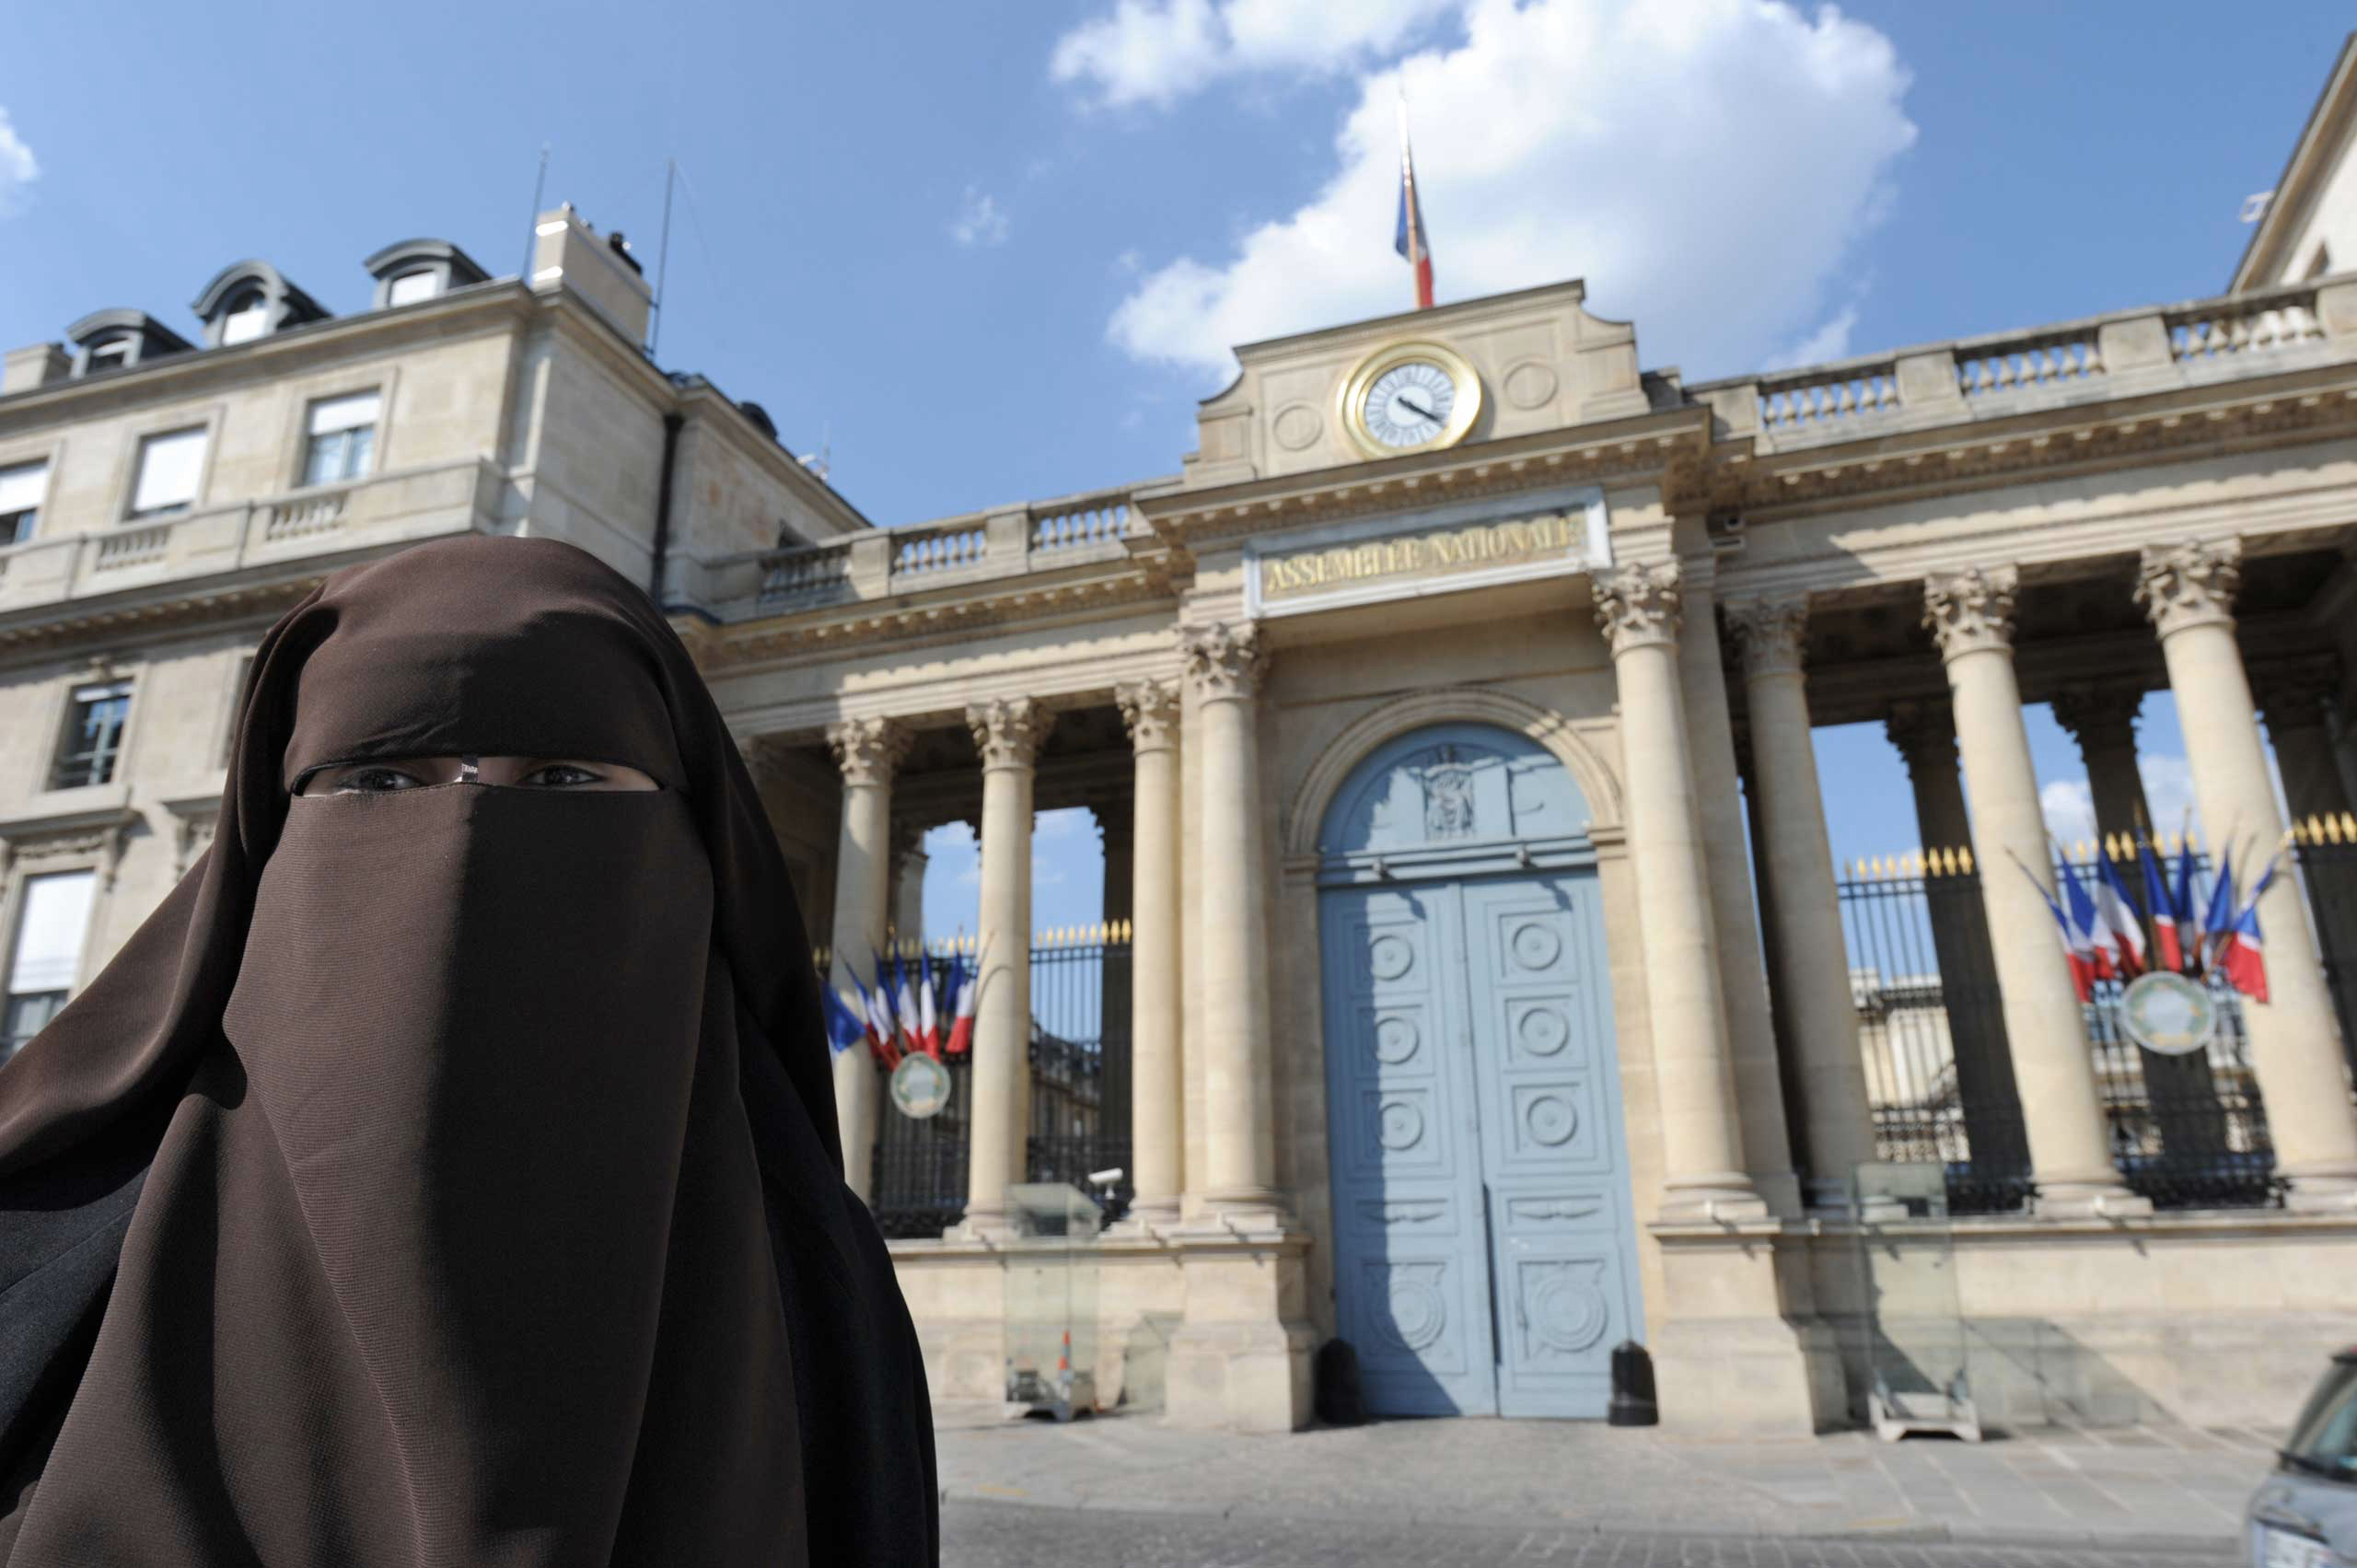 A woman poses in front of the French National Assembly to protest against ban on wearing full-face niqab veils in public, in Paris in 2011.